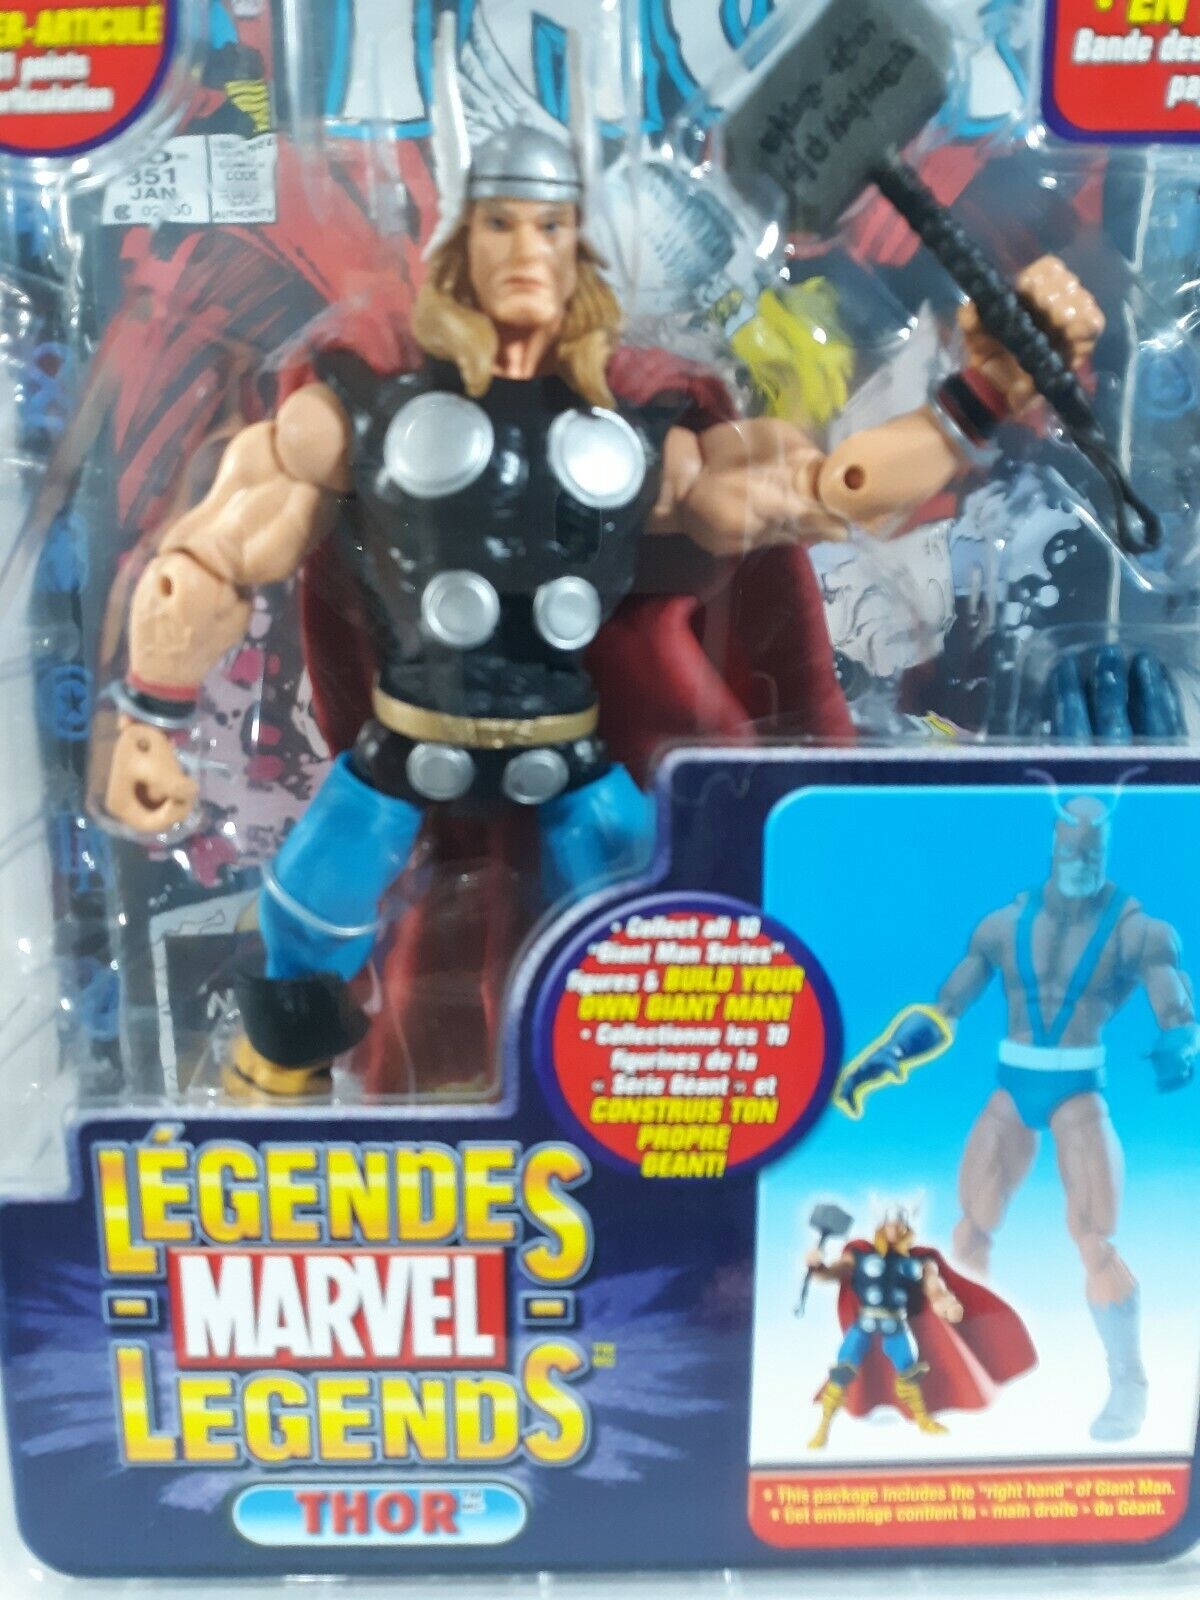 Marvel Legends Thor  Giant Man Series Action Figure Toy Biz  NEW A15